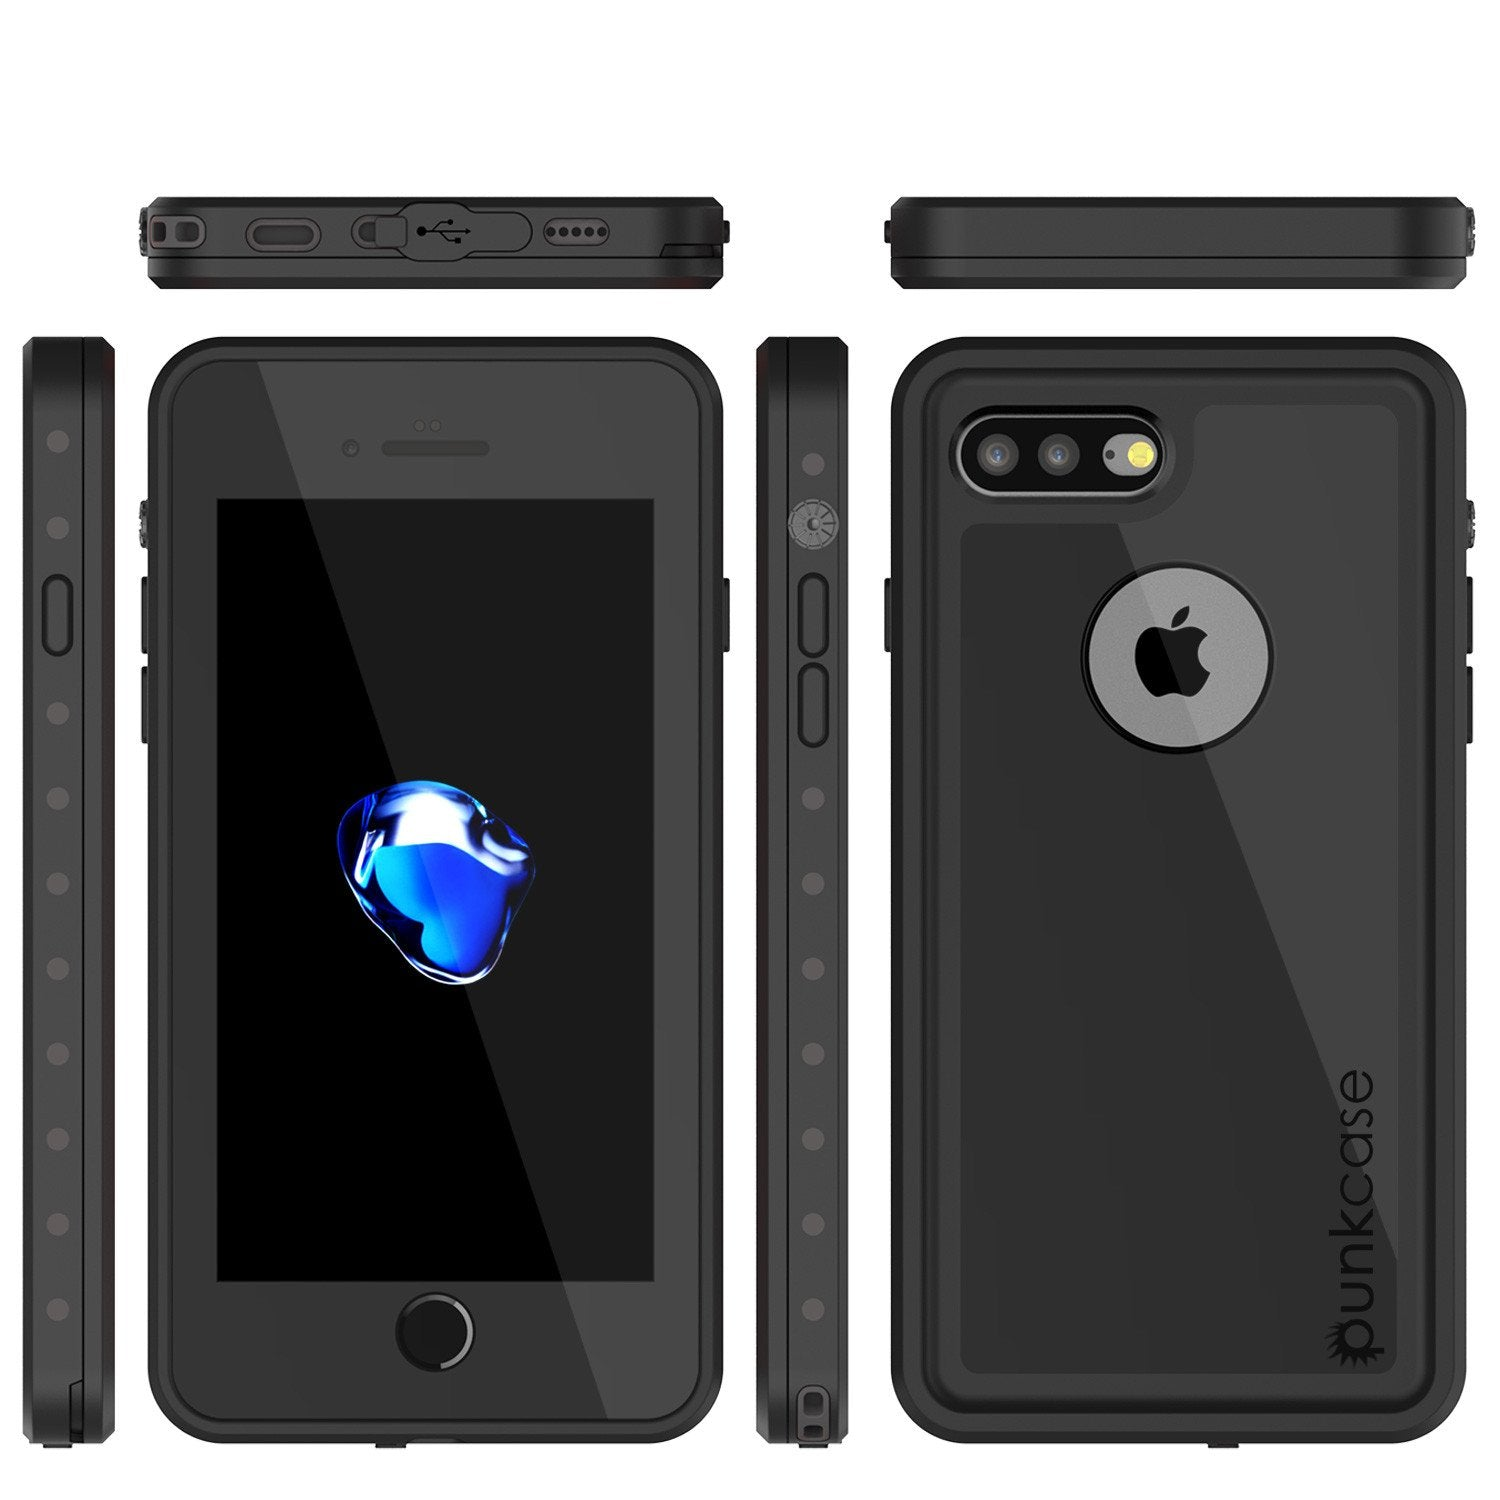 iPhone 8+ Plus Waterproof IP68 Case, Punkcase [Black] [StudStar Series] [Slim Fit] [Dirtproof]